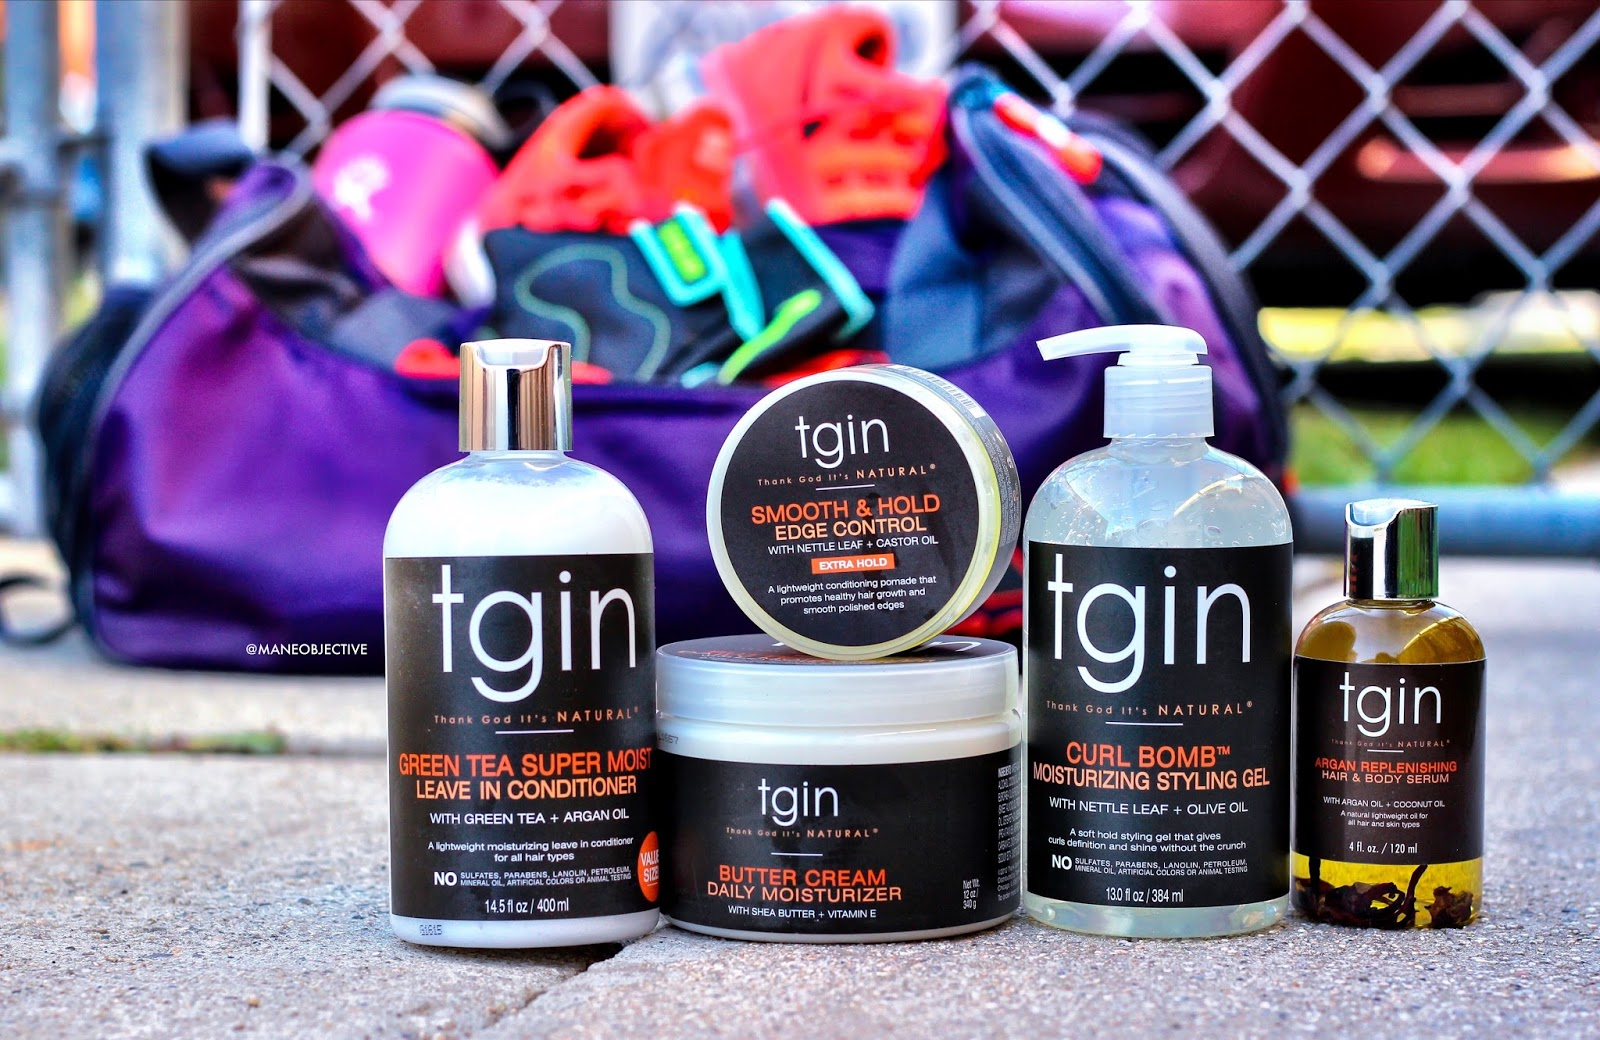 Review Working Out With Tgin S New Curl Bomb Styling Gel Smooth